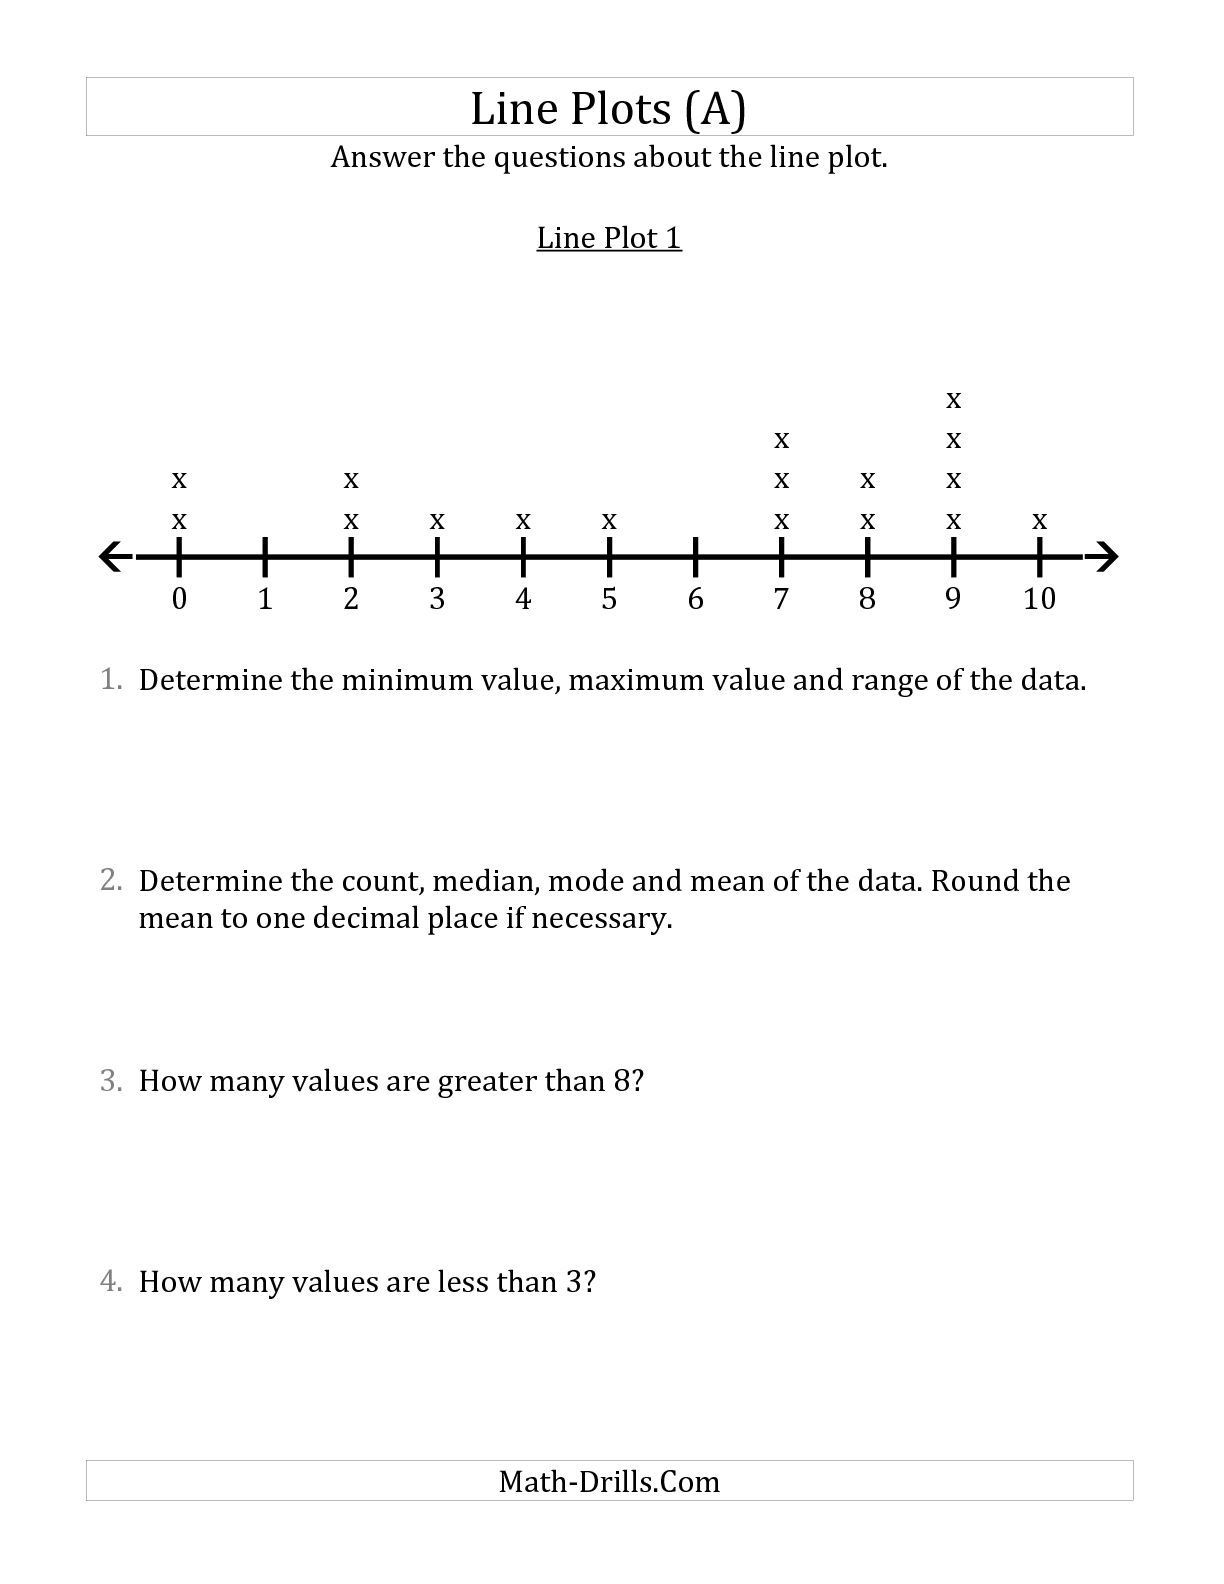 Line Graphs Worksheets 5th Grade the Questions About Line Plots with Smaller Data Sets and